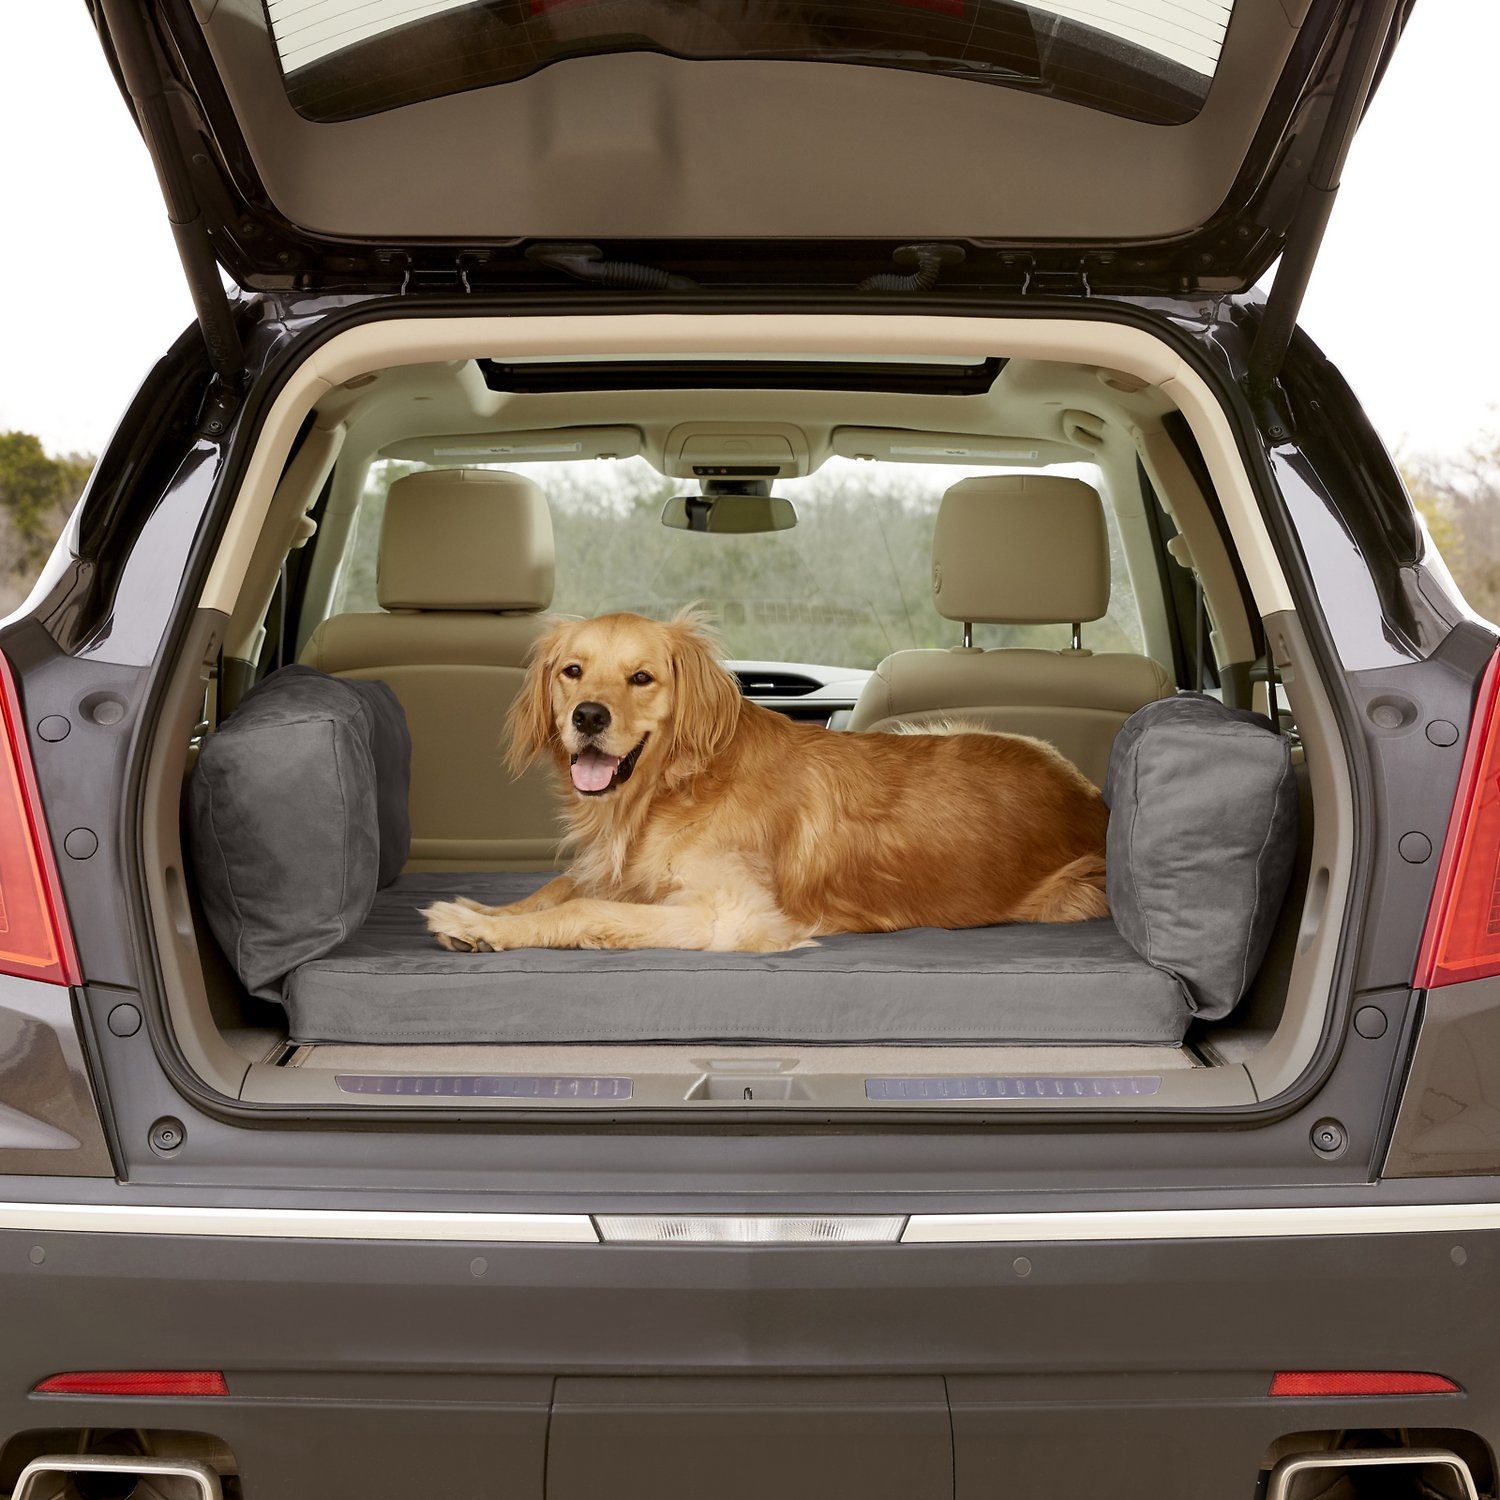 Big Barker Backseat Barker Suv Edition Orthopedic Dog Bed